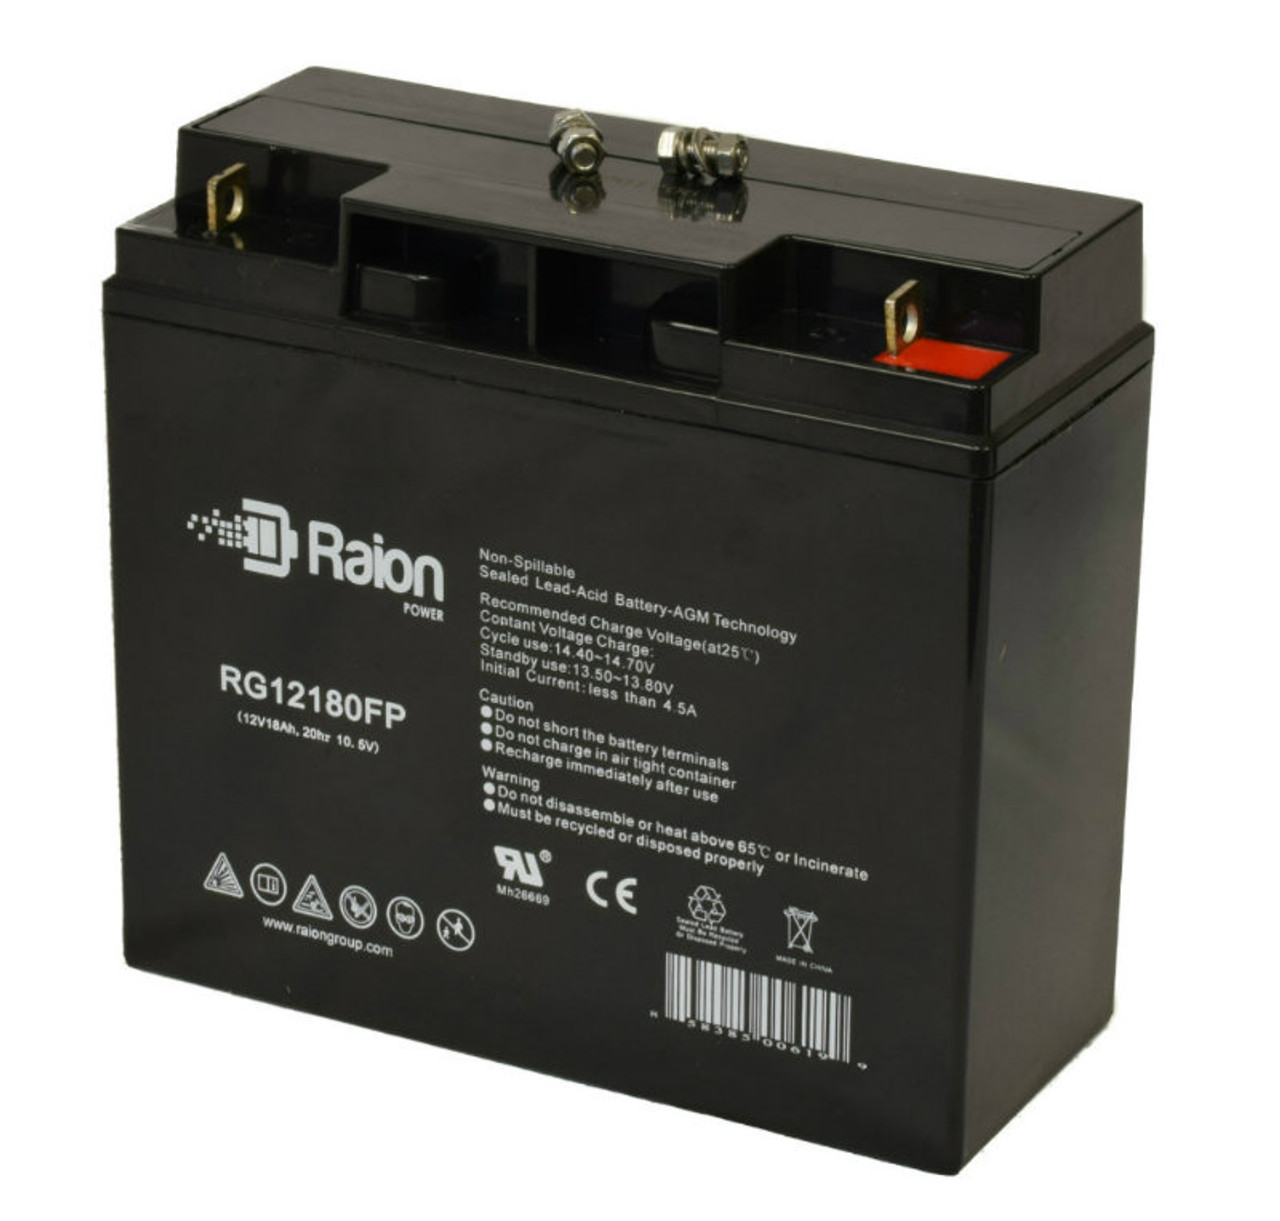 Raion Power RG12180FP Replacement Battery For IMC Heartway Nomad PT-3 Mobility Scooter